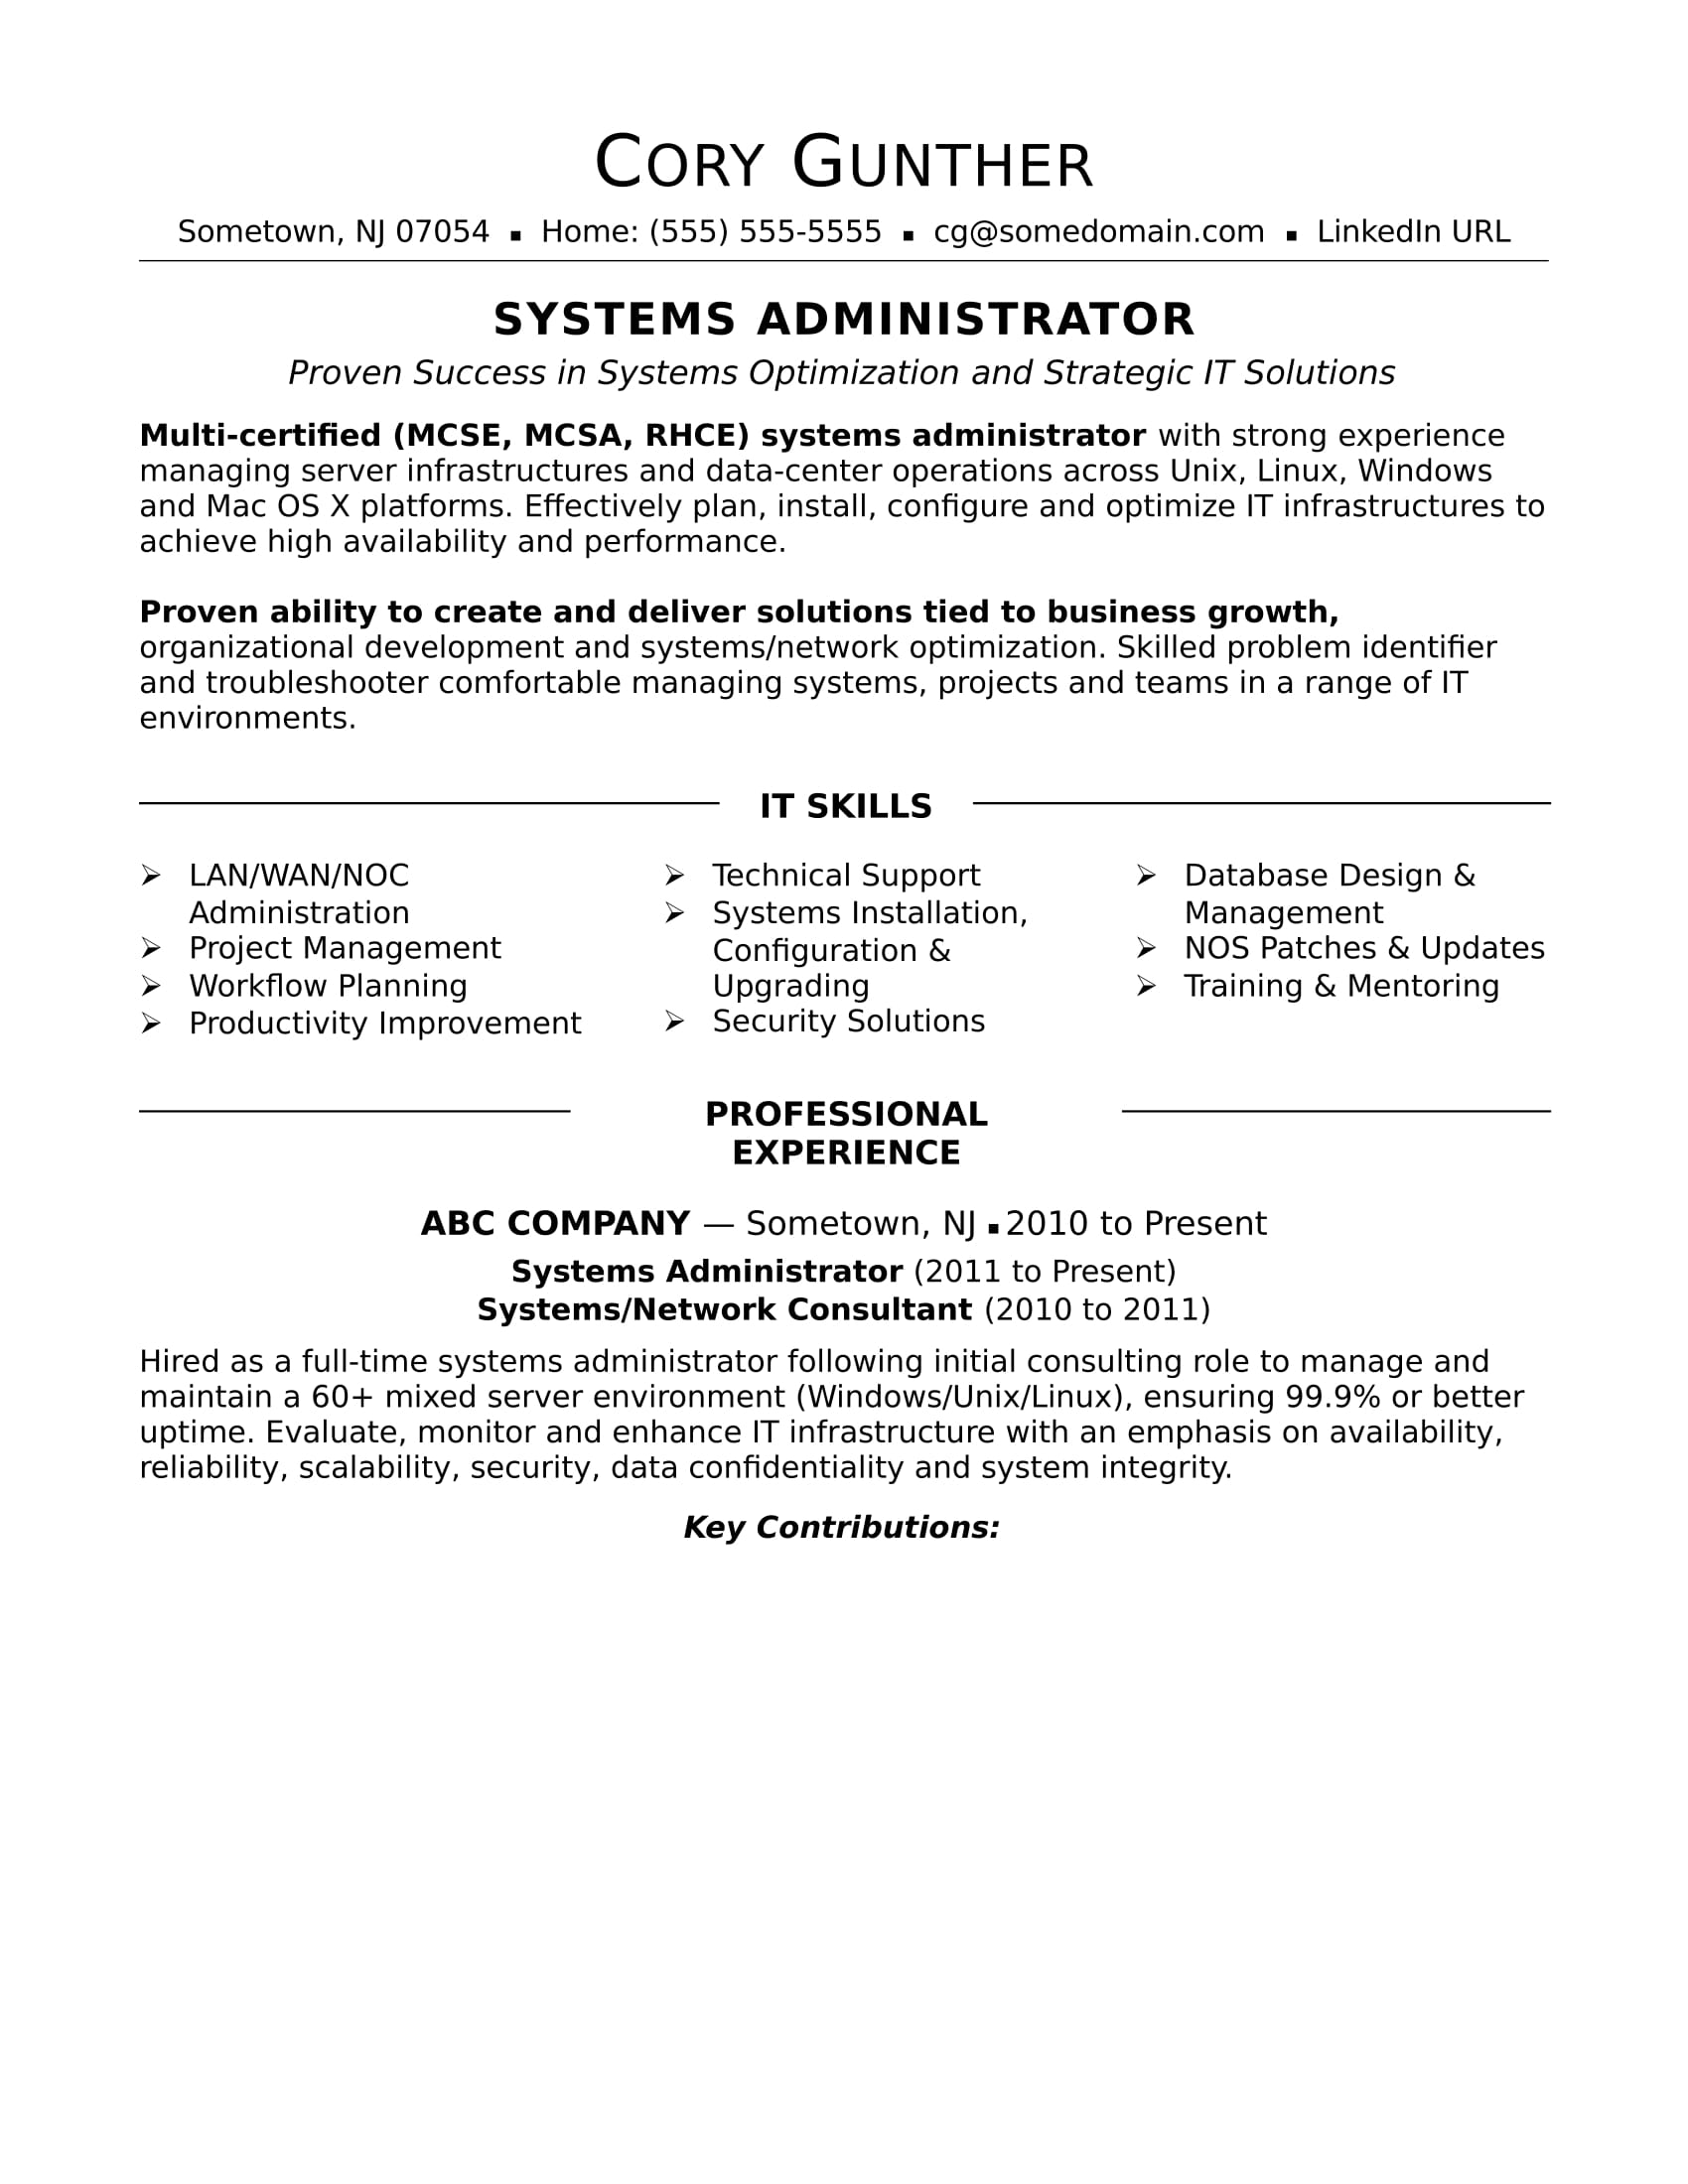 sample resume for an experienced systems administrator monster windows server format tom Resume Windows Server Administrator Resume Format